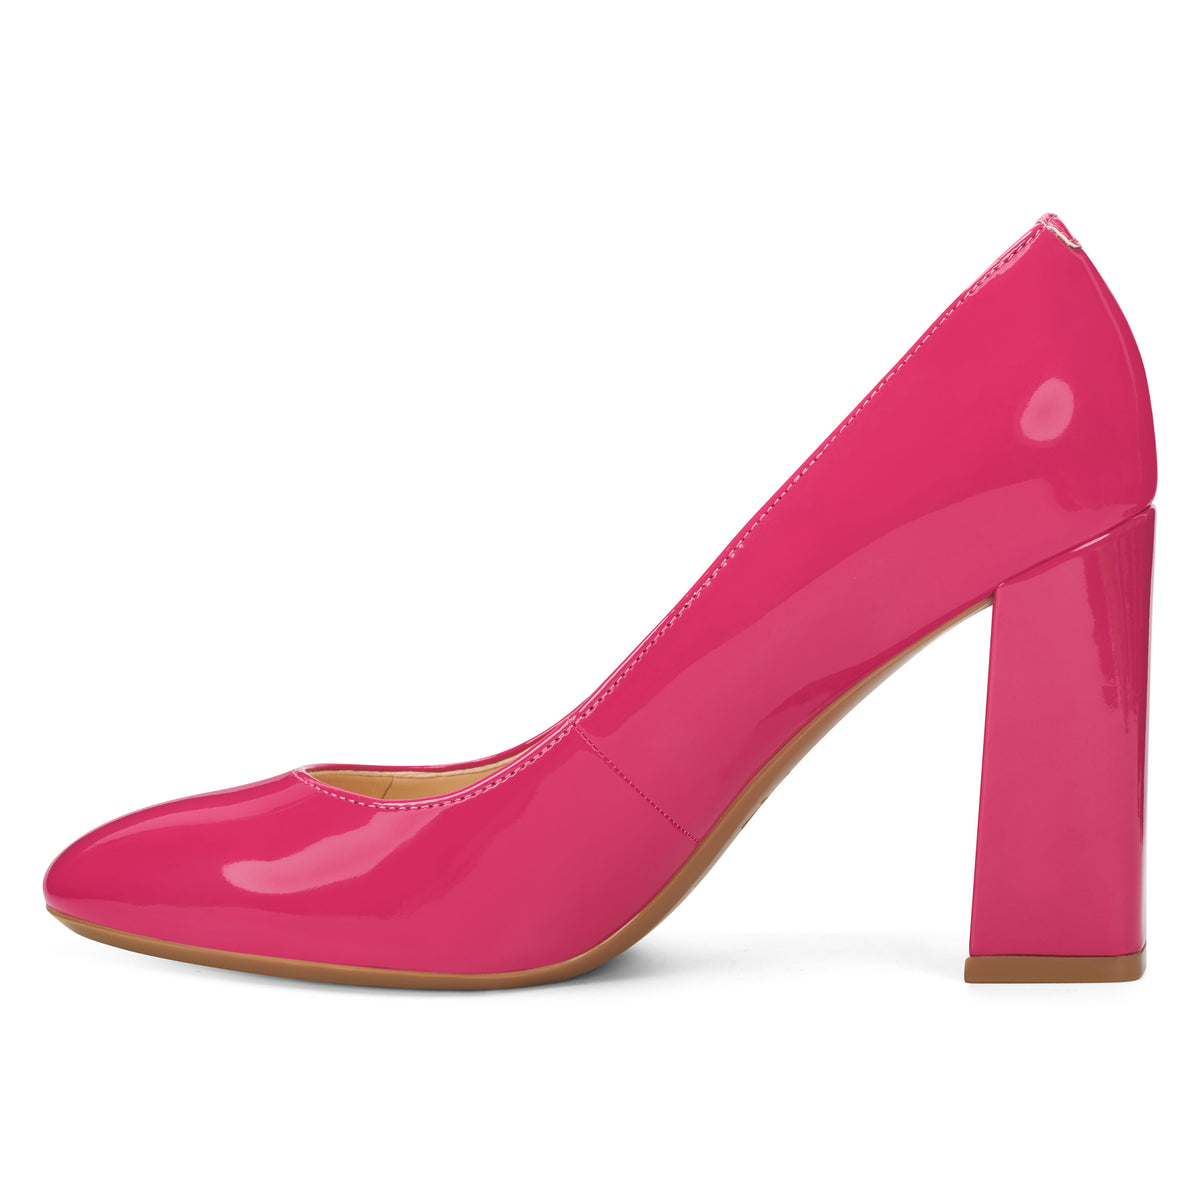 arya-block-heel-pumps-in-dark-pink